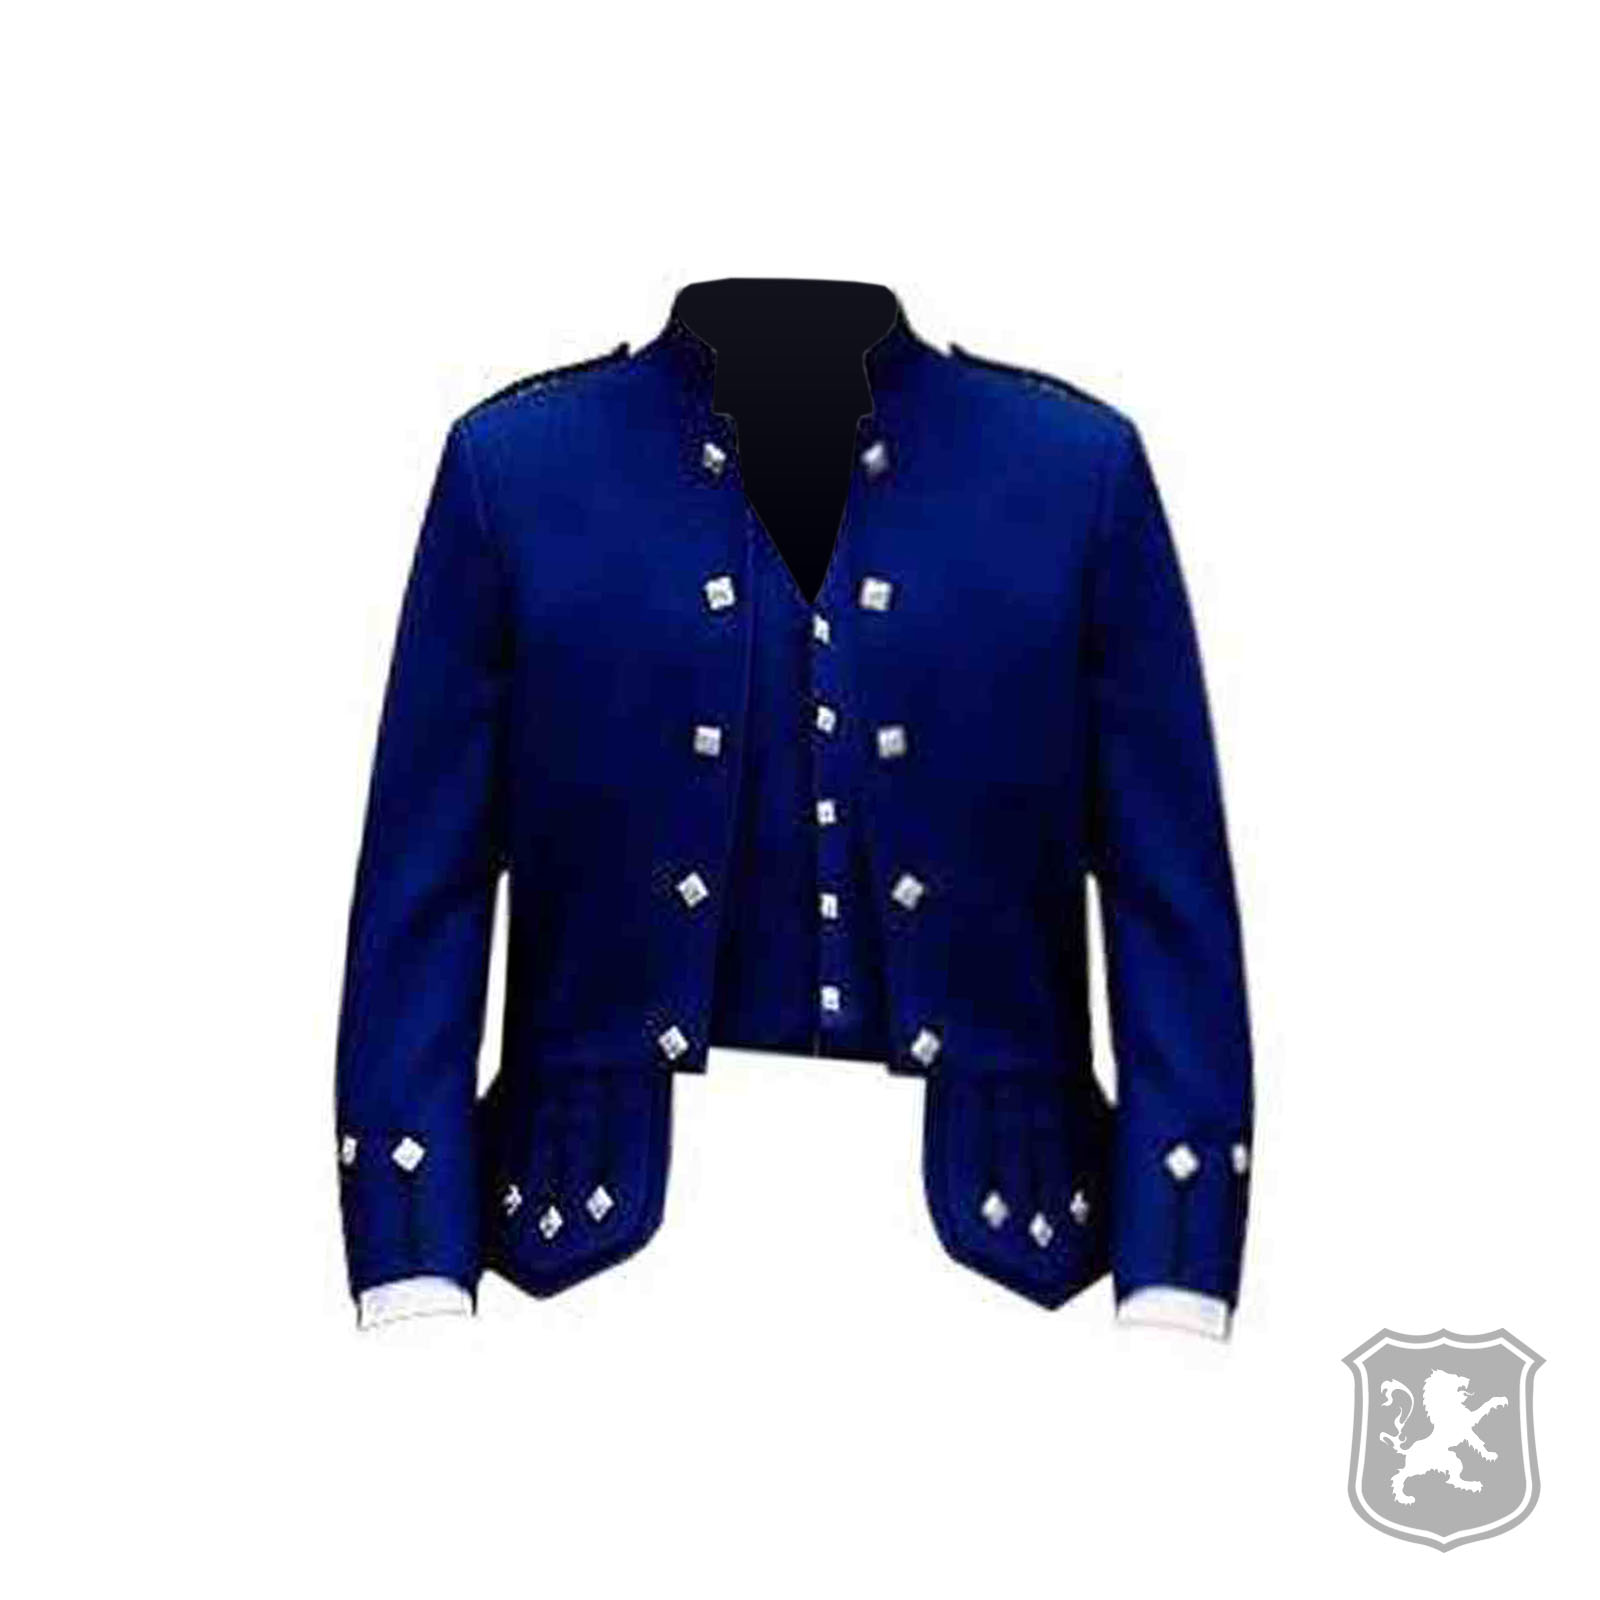 Sheriffmuir Navy Blue Jacket With 5 Buttons Vest